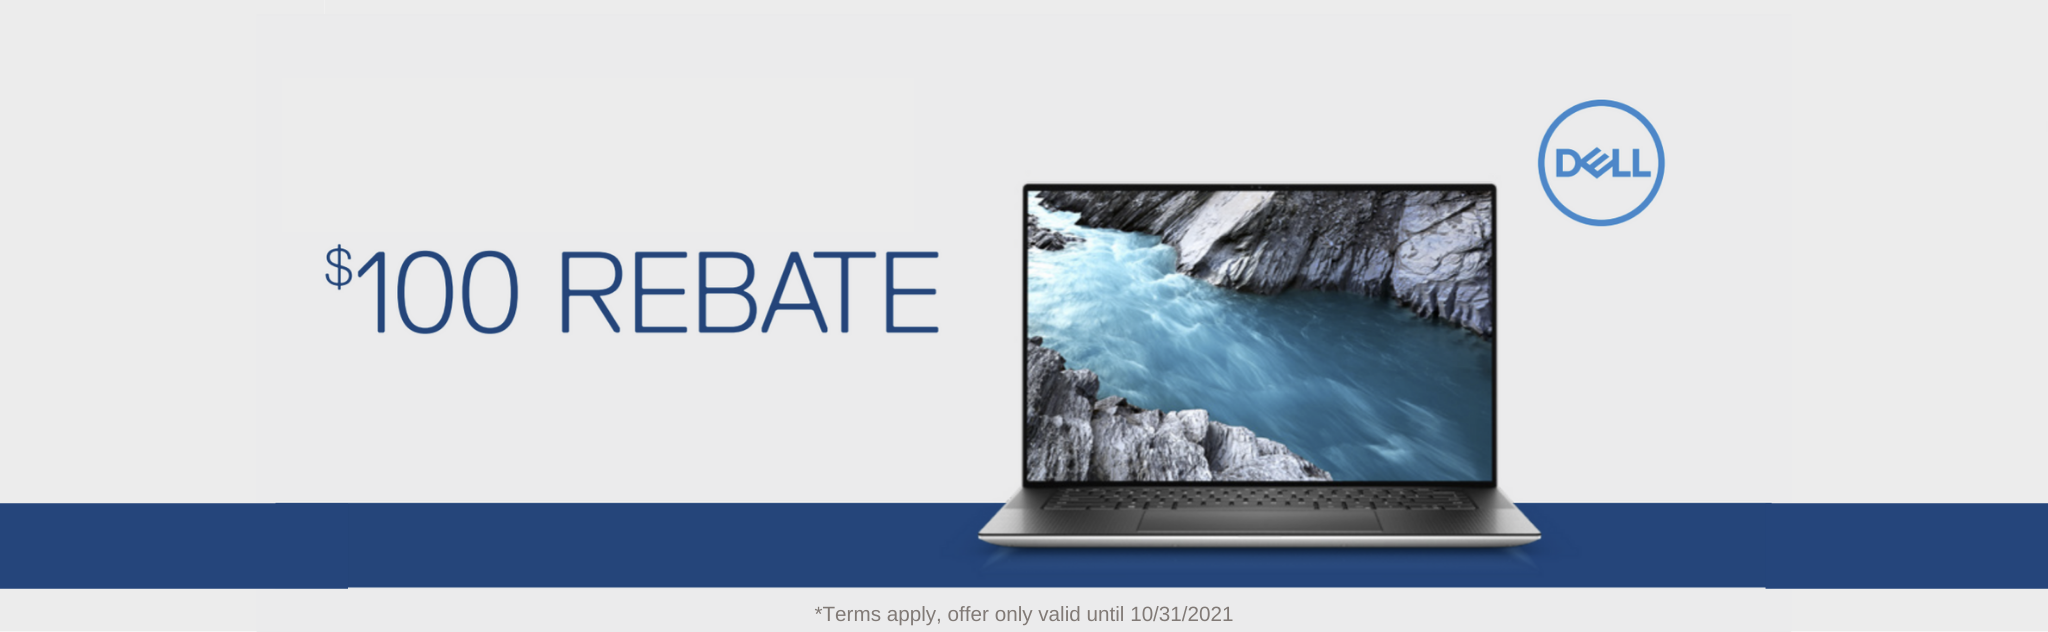 $100 rebate with the purchase of a new dell computer $499 or more, valid until 10/31/2020